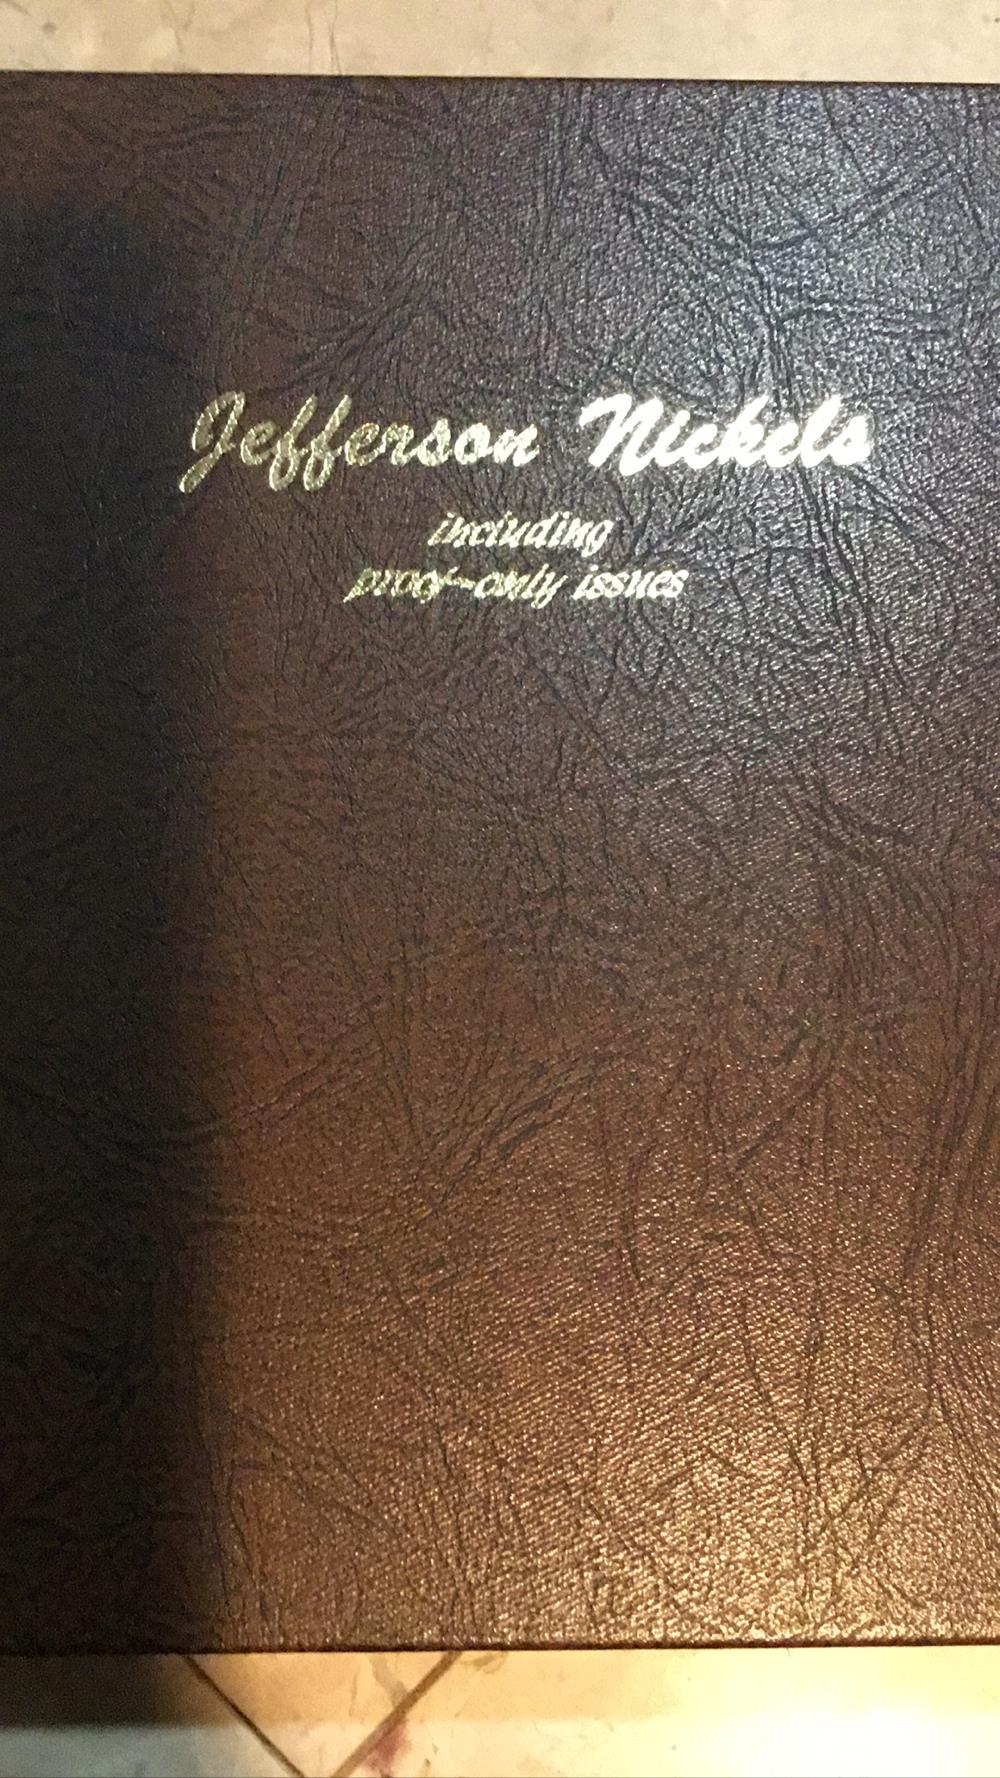 Jefferson nickel book